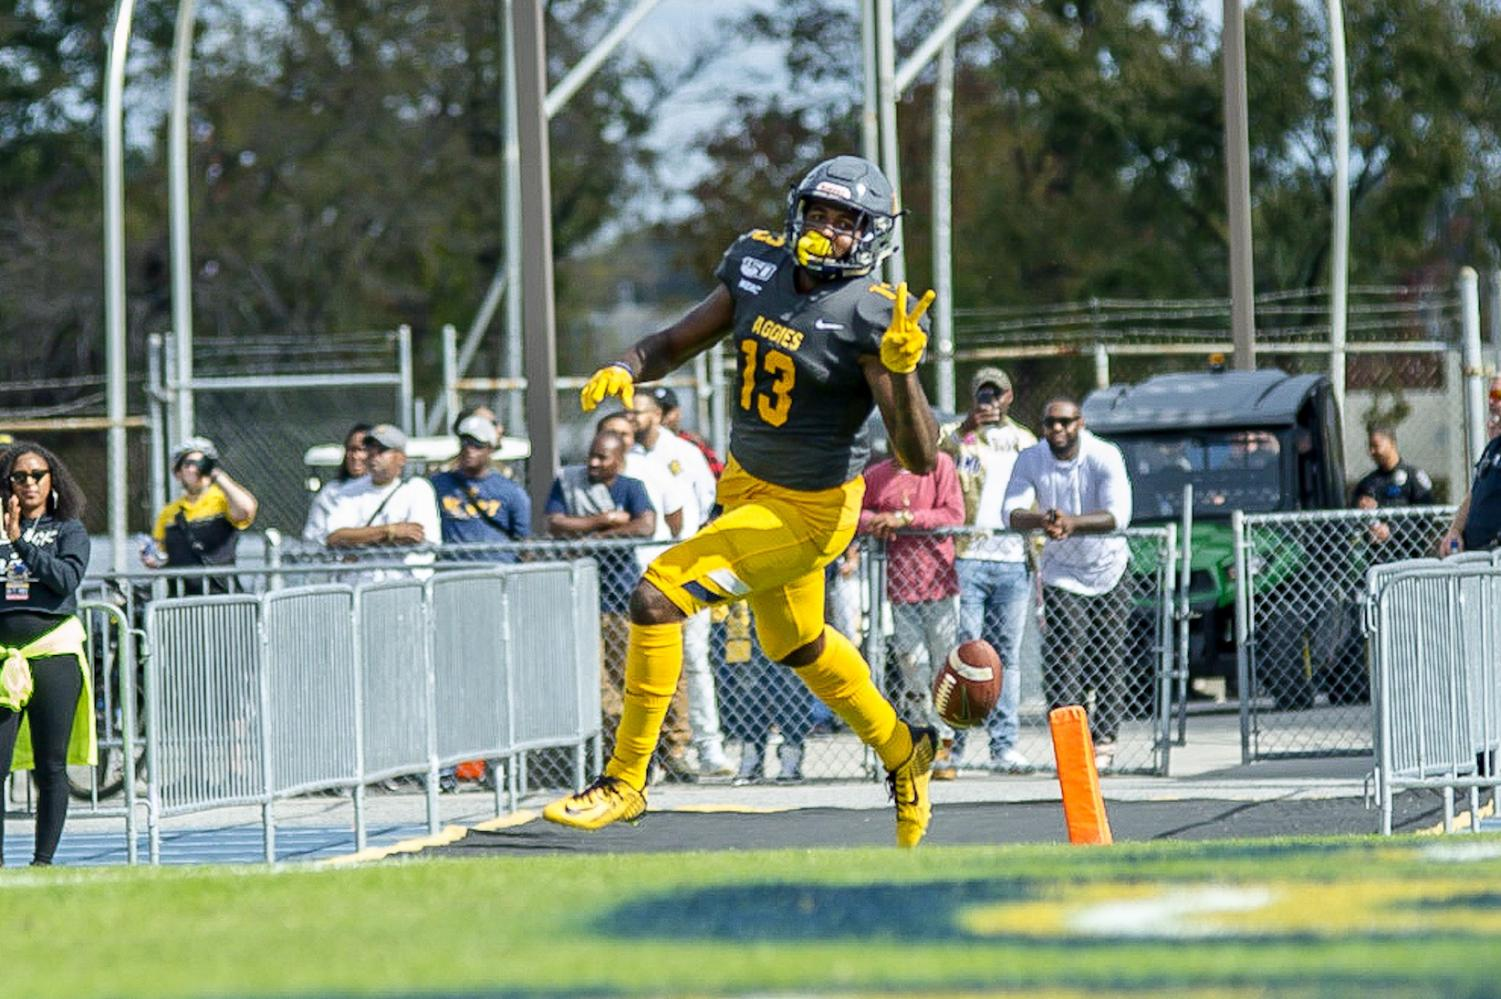 Wide receiver Elijah Bell, senior, sprints in the end zone during N.C. A&T's homecoming game on Oct. 26, 2019